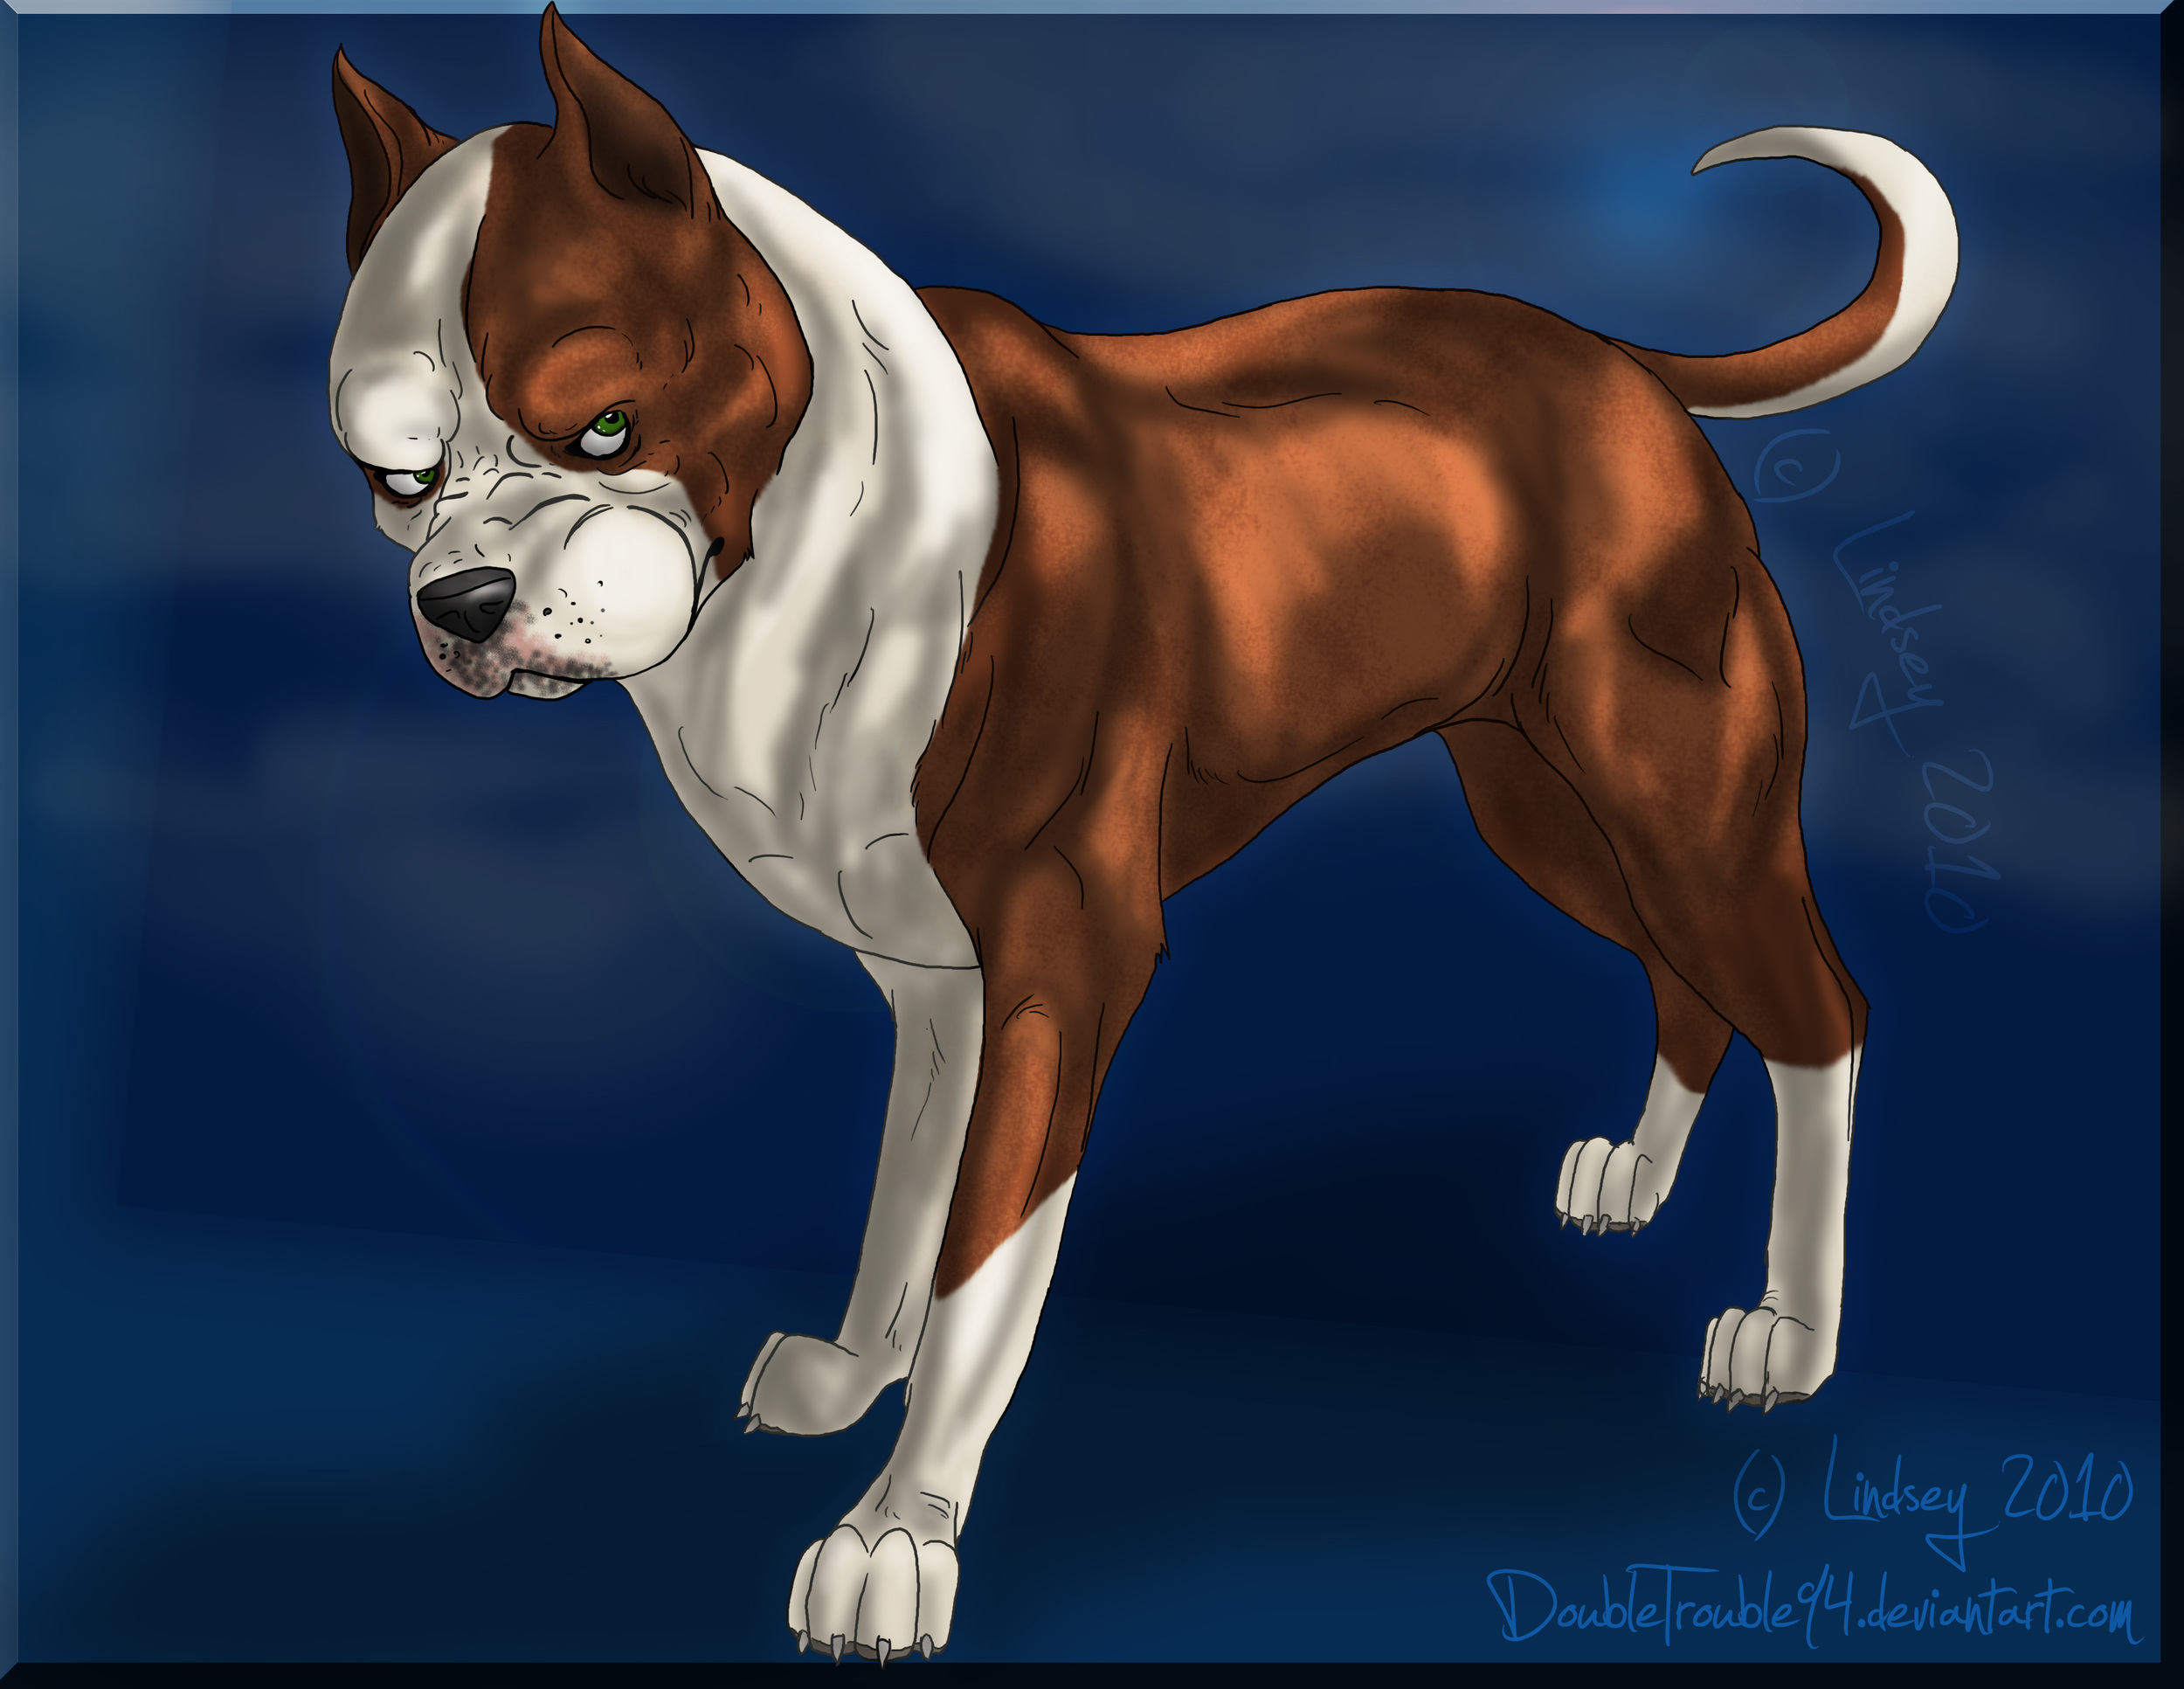 pittbull_drawing_by_doubletrouble94-d32qchi.jpg